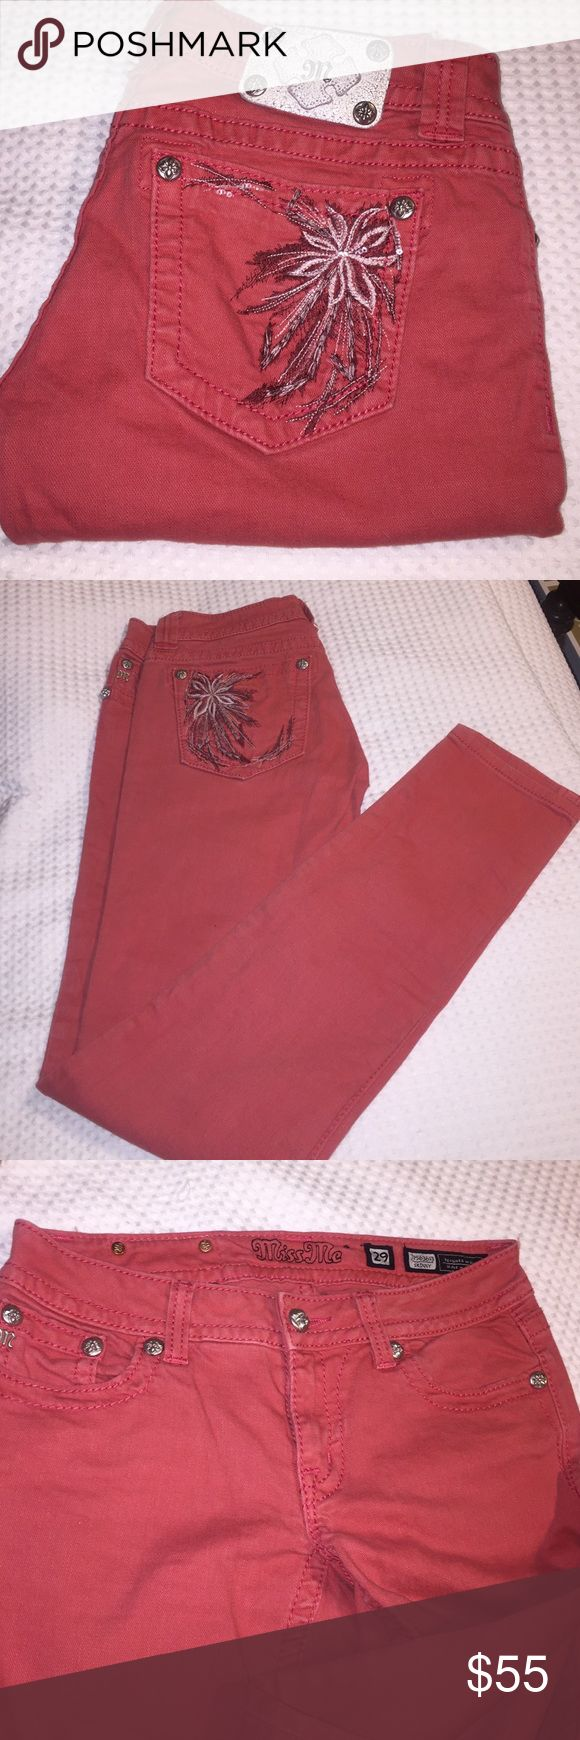 Miss Me. Skinny. Waist 29 inseam 32 *used * ( not new ). No wear on bottoms these are super cute. Excellent condition. Fast ship Miss Me Jeans Skinny